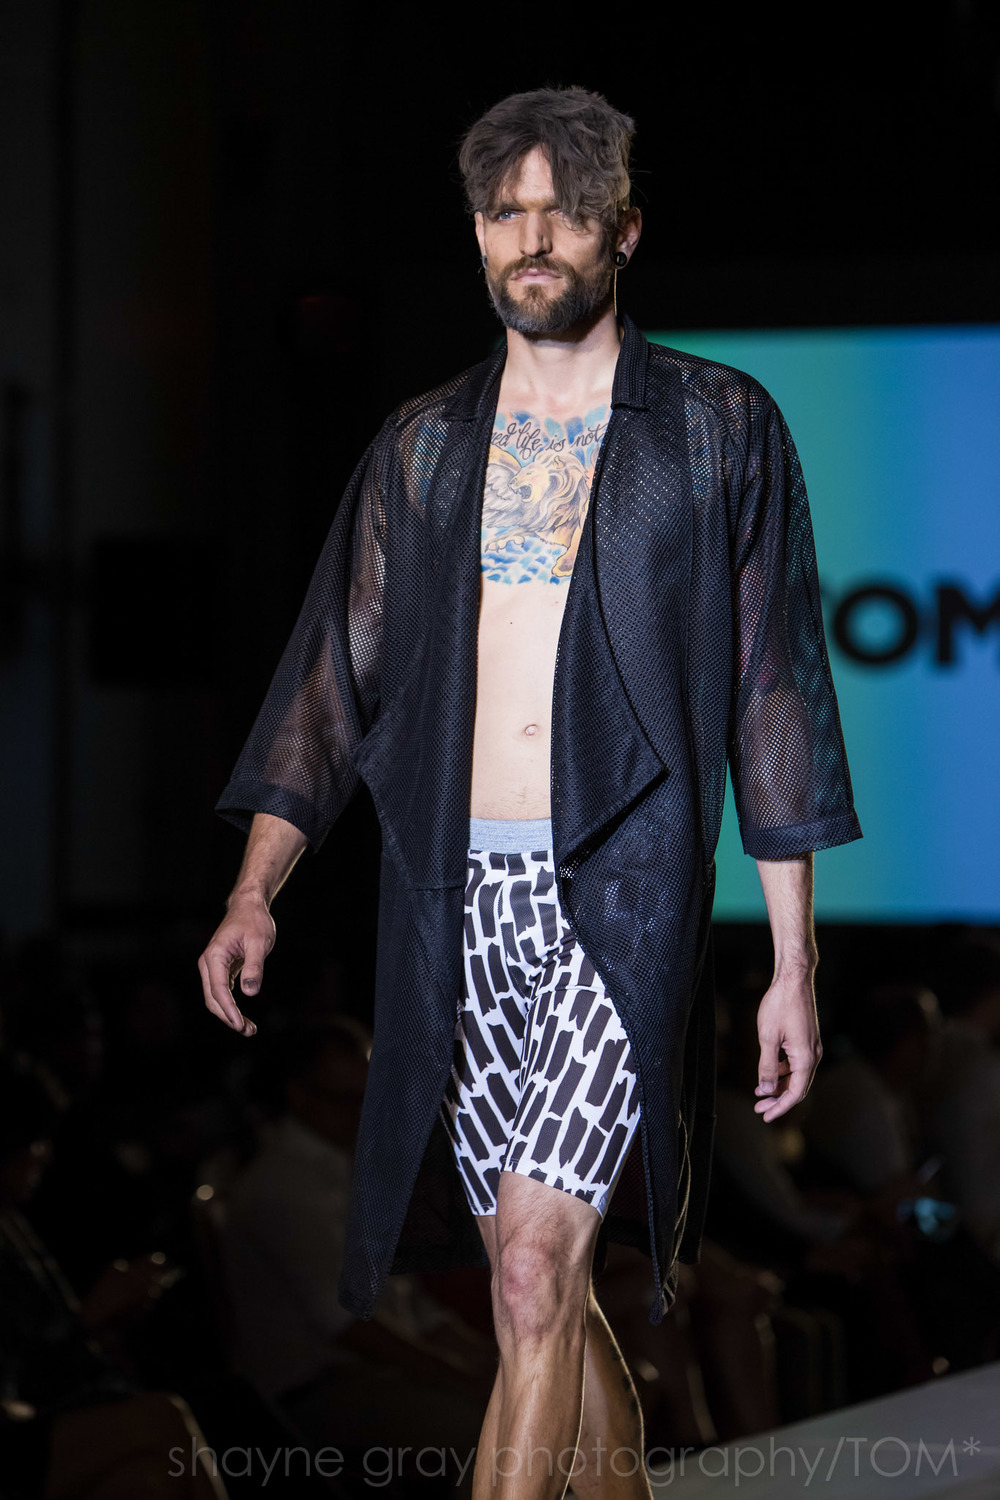 Shayne-Gray-Toronto-men's-fashion_week-TOM-jose-duran-7709.jpg